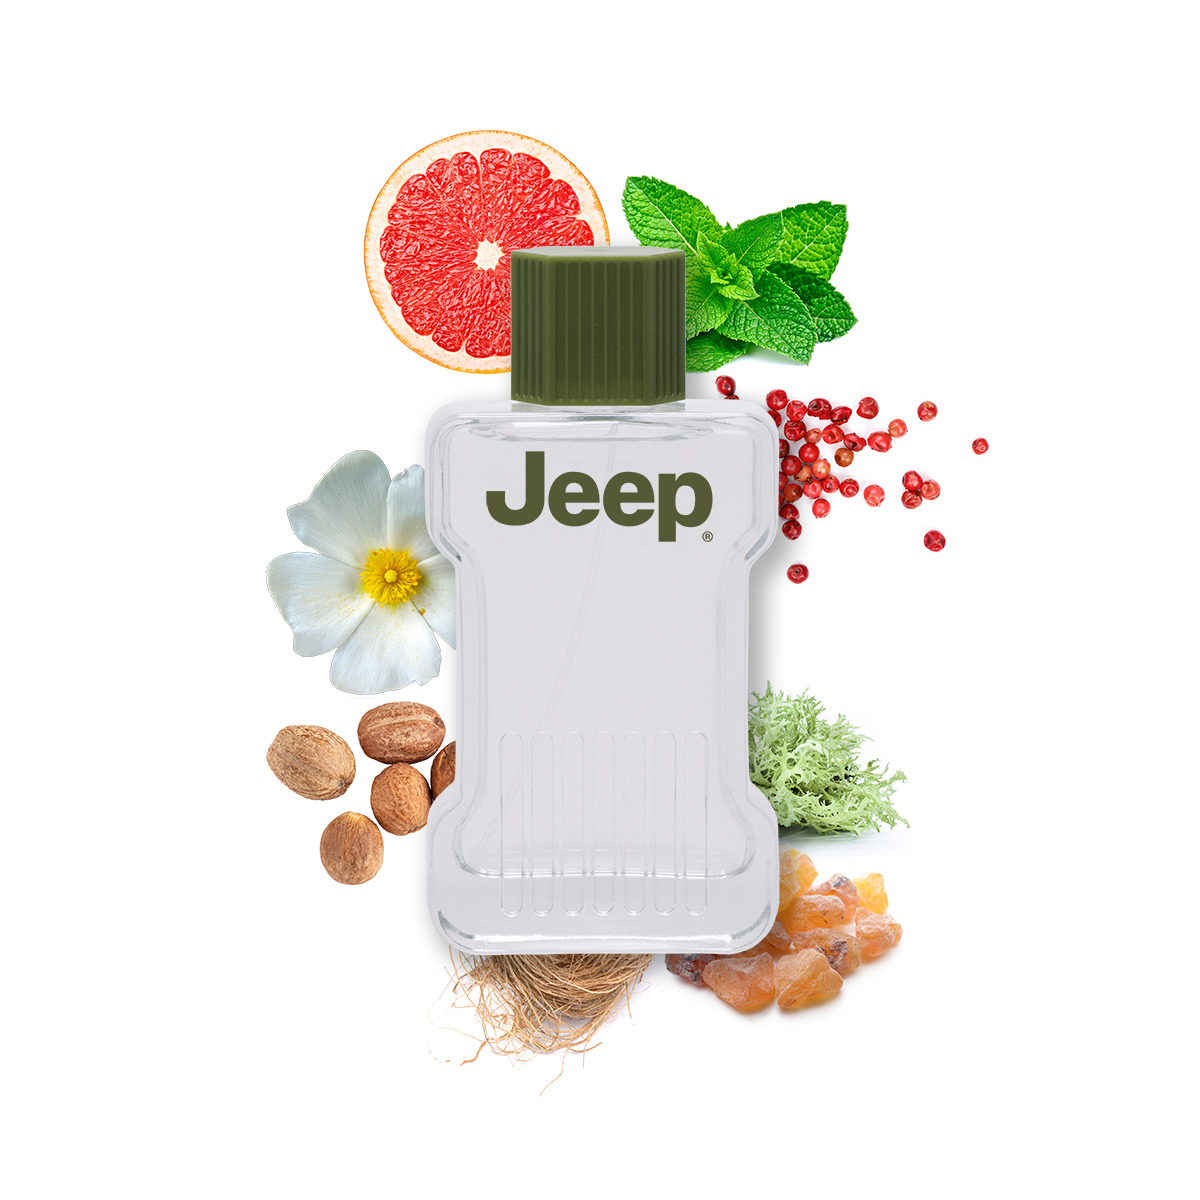 Jeep Adventure Eau de Toilette